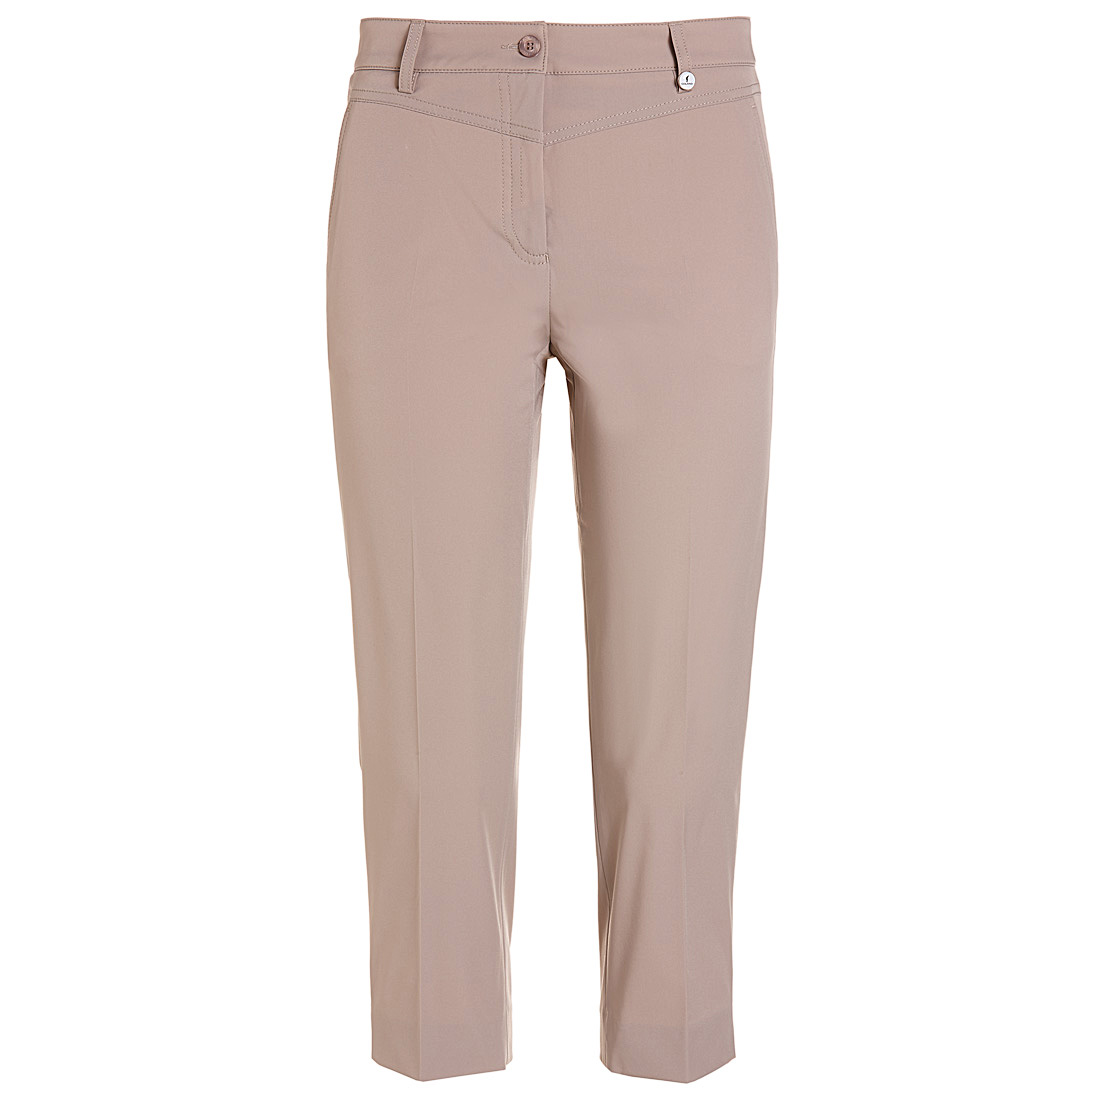 Damen Golfhose aus Techno Stretch